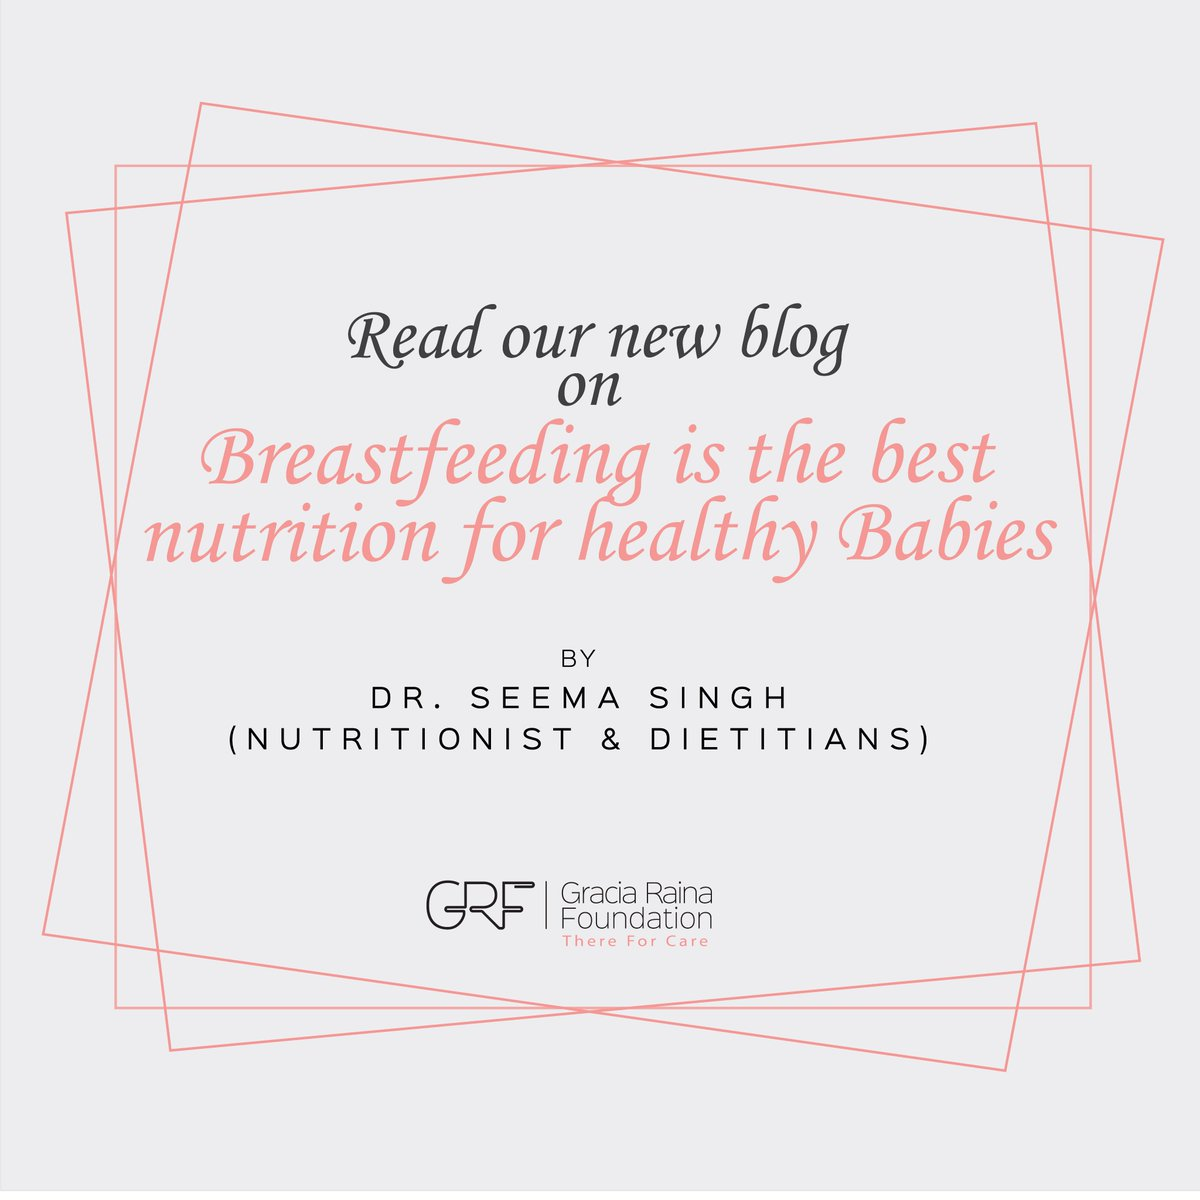 Breastfeeding is the best nutrition for healthy growth and development of the babies. graciarainafoundation.com/single-post/20…